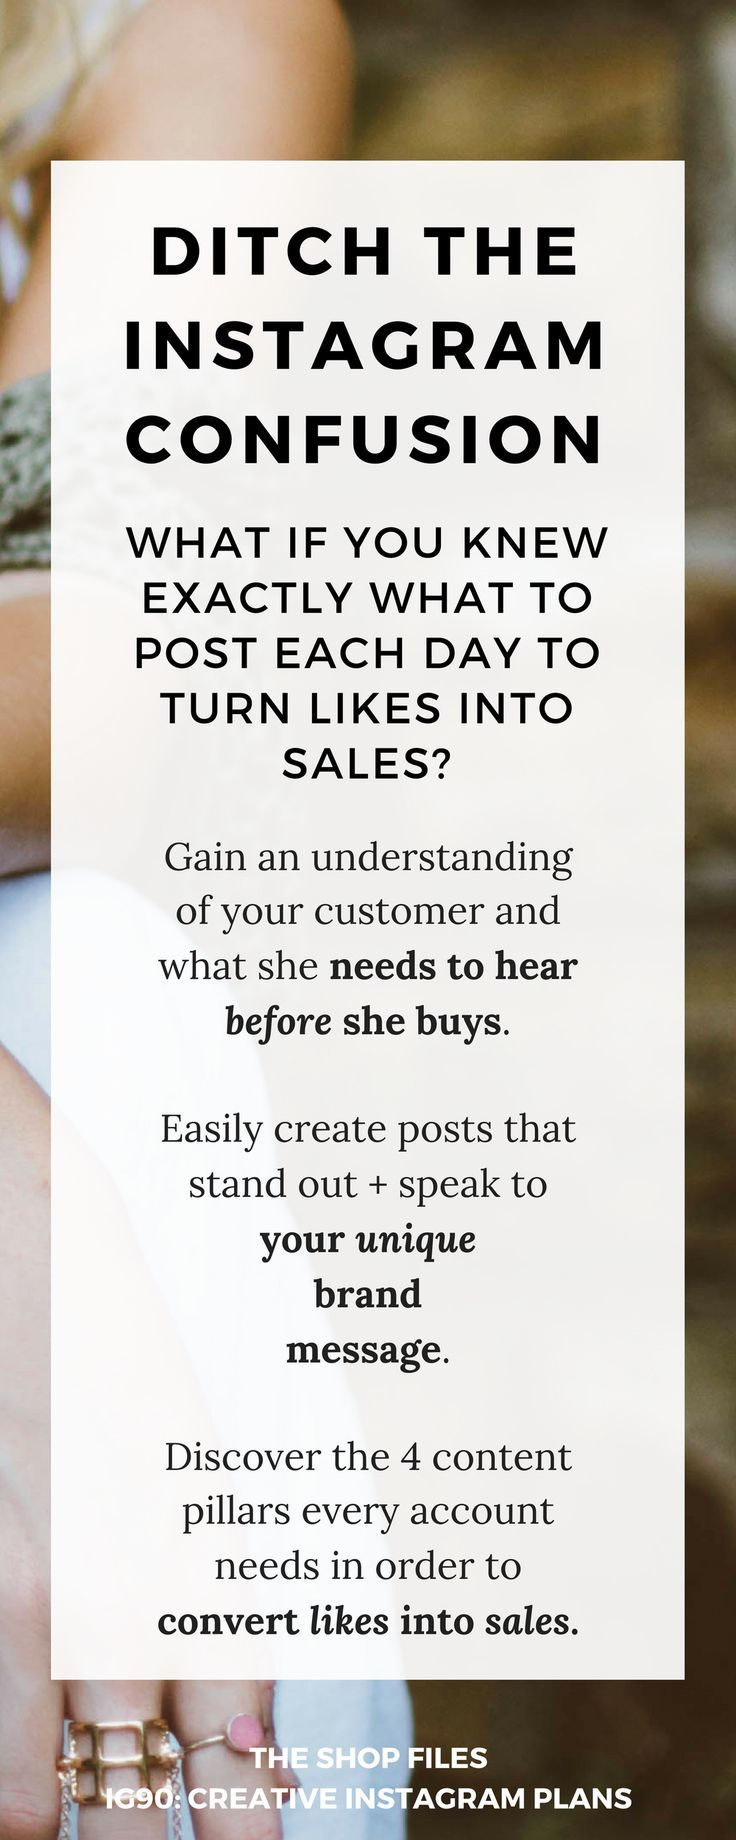 Ditch the Instagram confusion! Learn exactly what to post each day to turn Instagram likes into SALES. How to sell on Instagram | How to use Instagram to drive sales | How to use Instagram to sell on Etsy and grow your shop sales | Grow your Instagram followers